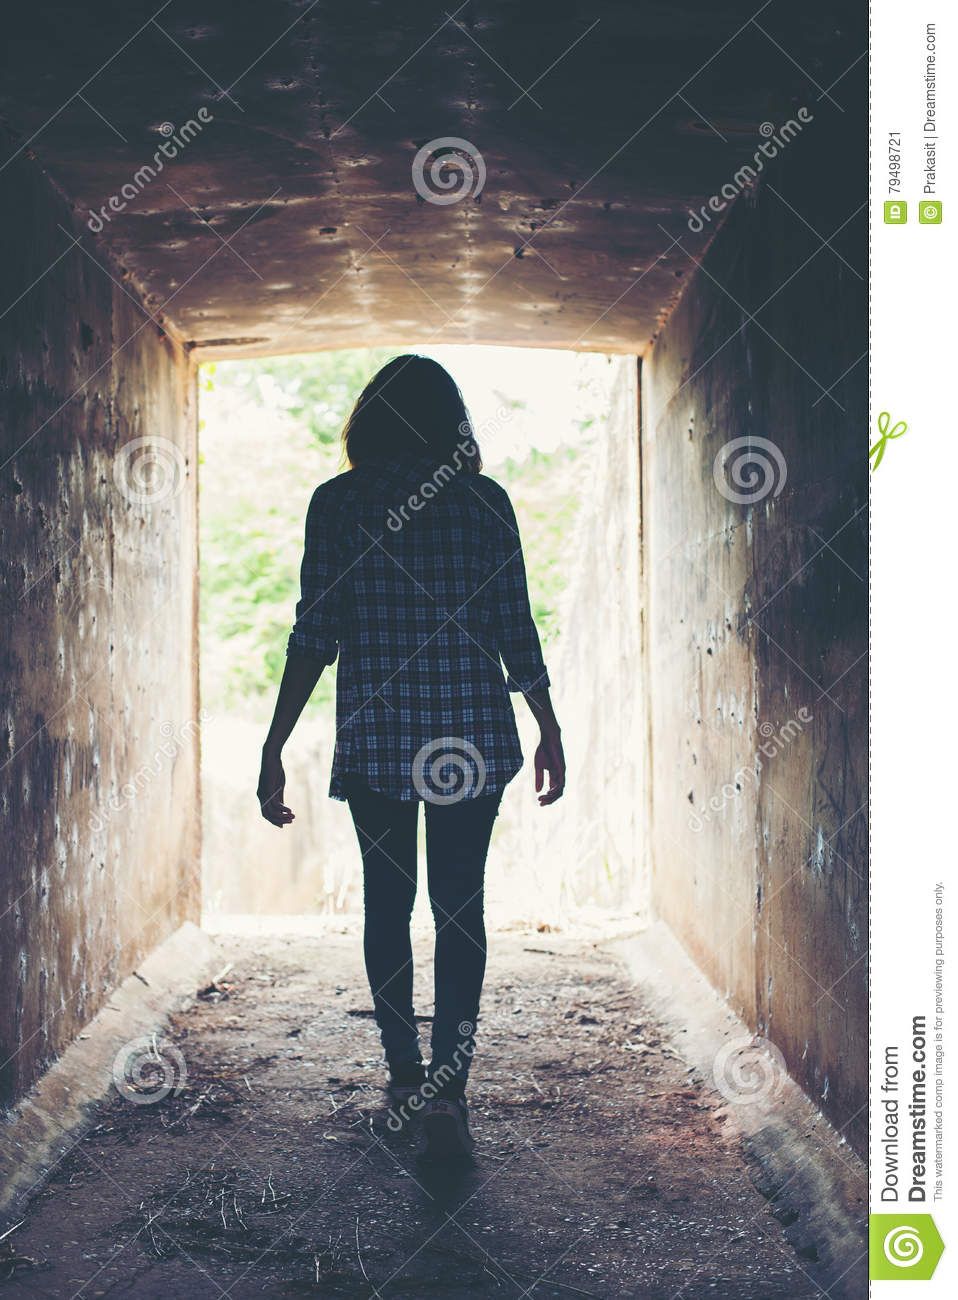 Silhouette of hipster woman walk in tunnel. Light at End of Tun